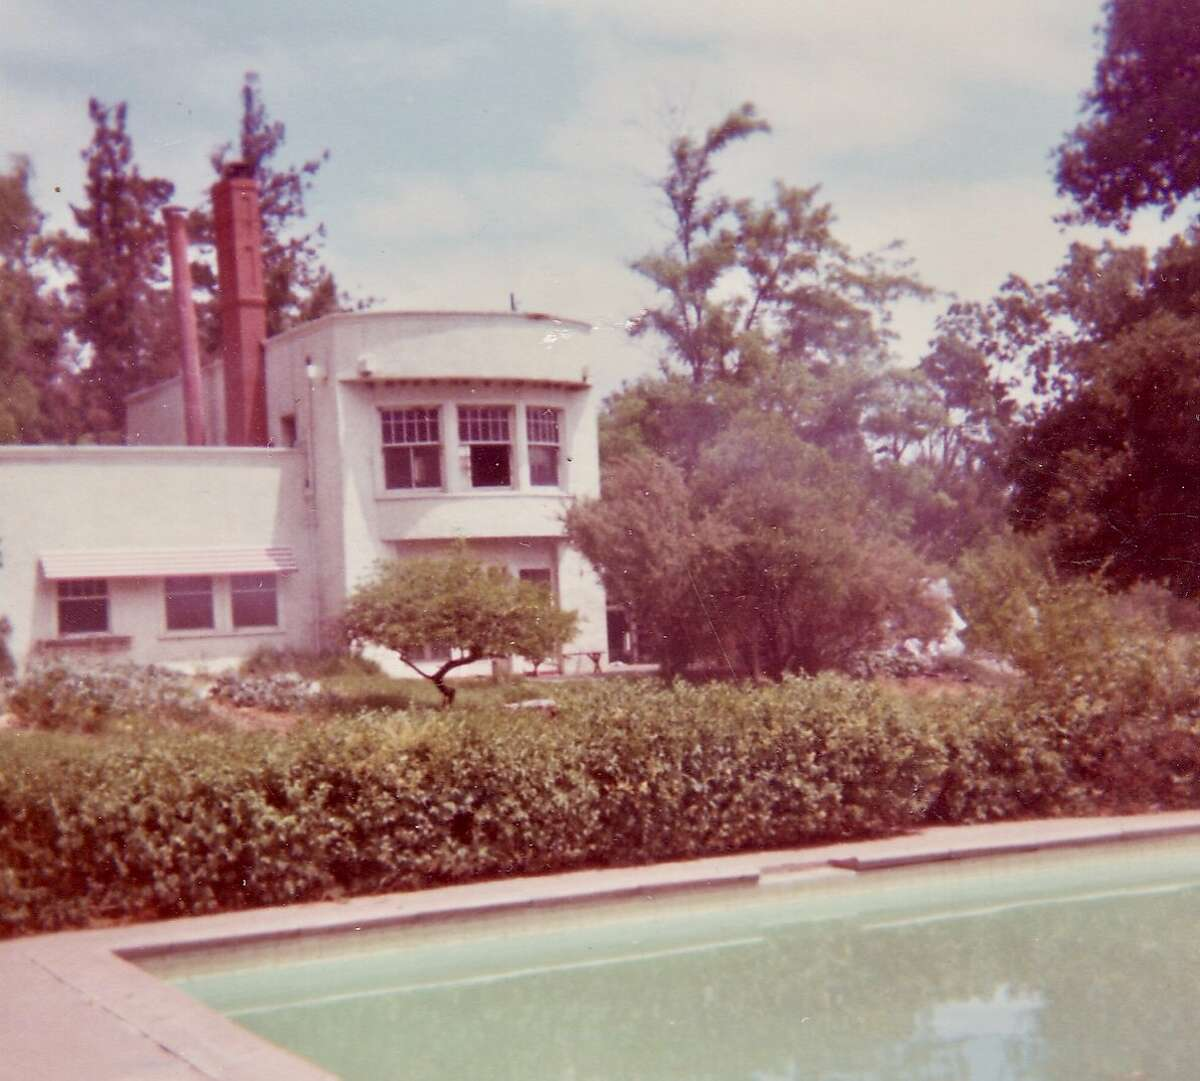 The historic Burdell mansion at Olompali was the site of the Chosen Family commune from 1967 to 1969 Photo: Noelle Barton